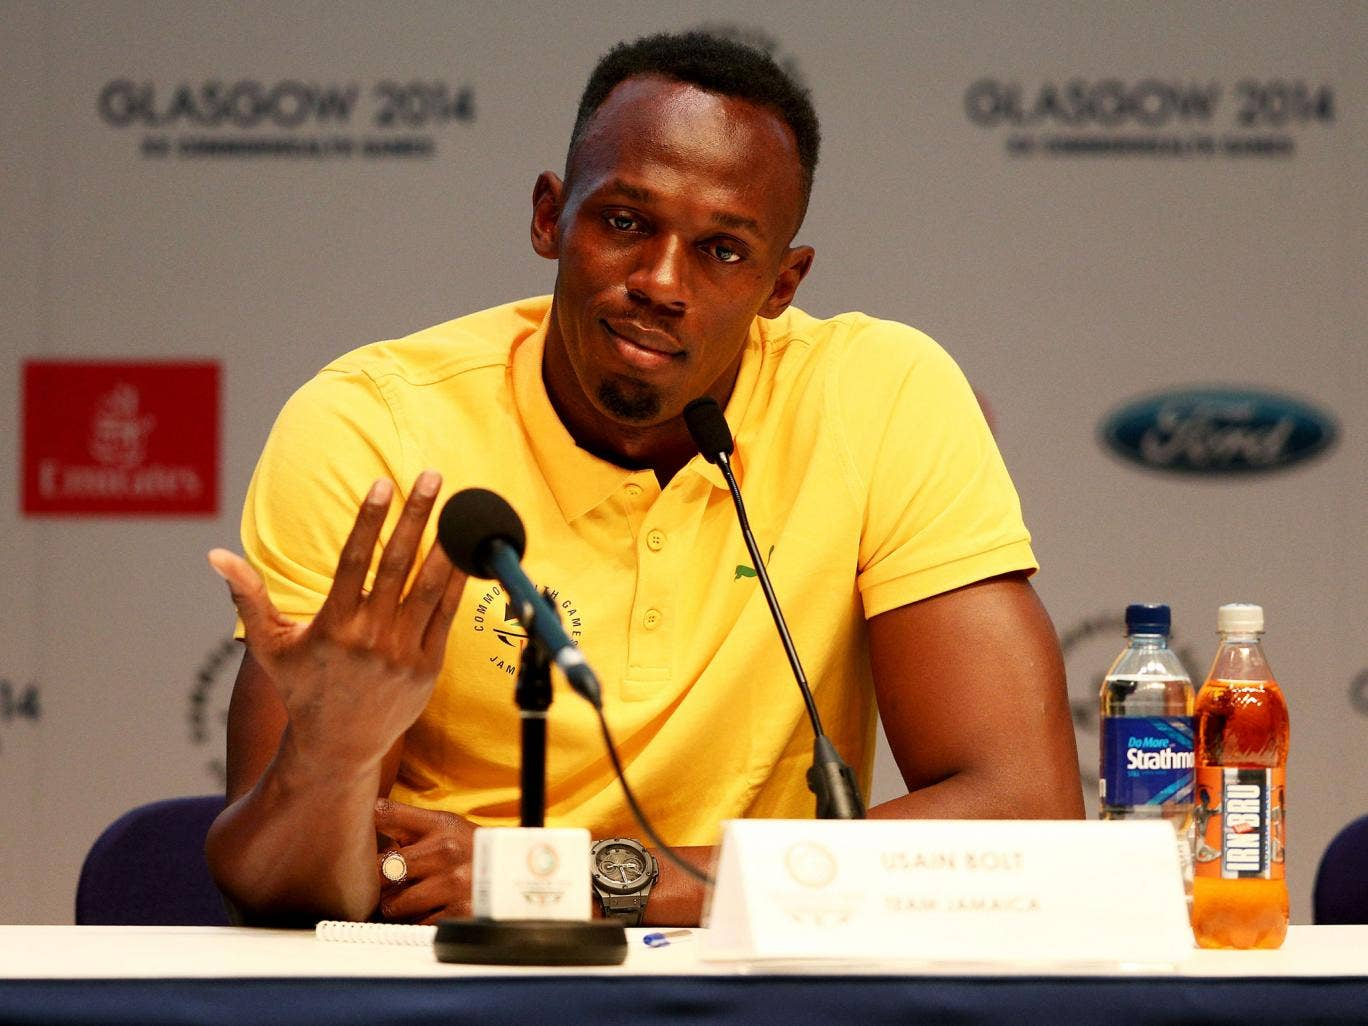 Usain Bolt vowed to beat runner that he labelled as 'drugs cheats'